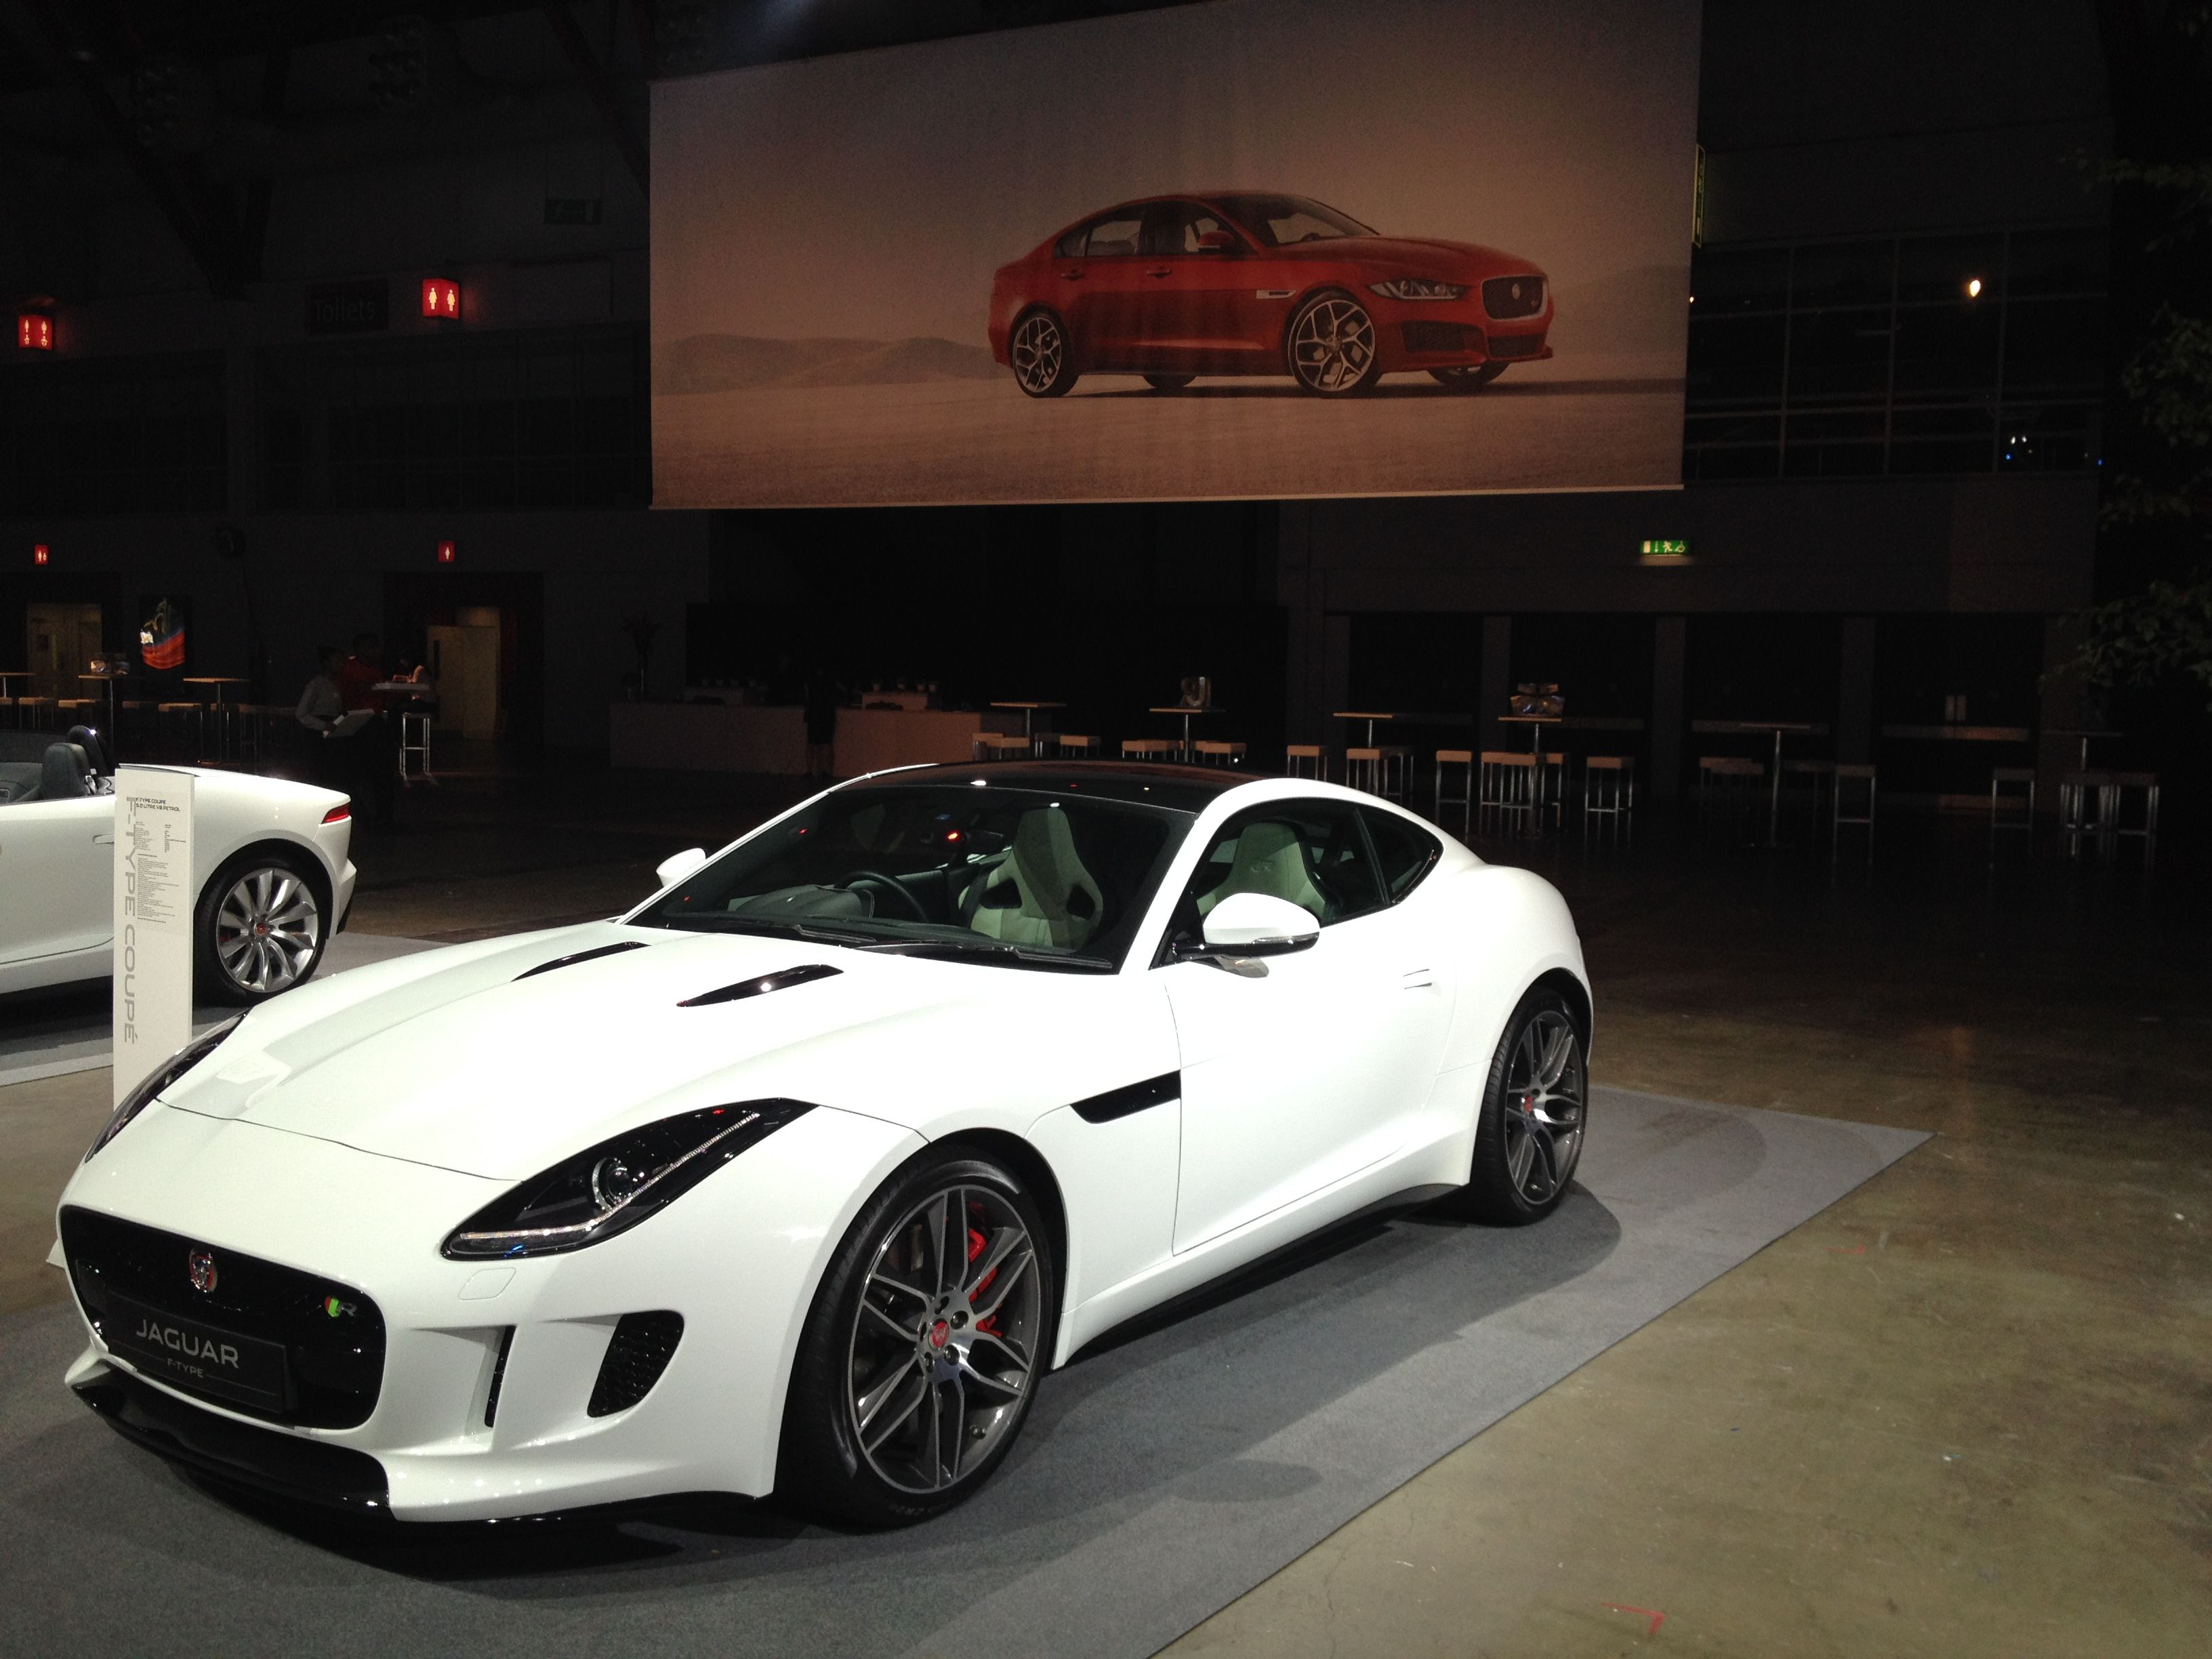 Jaguar F Type Coupe Lyons Of Limerick Jaguar F Type Jaguar Land Rover Jaguar